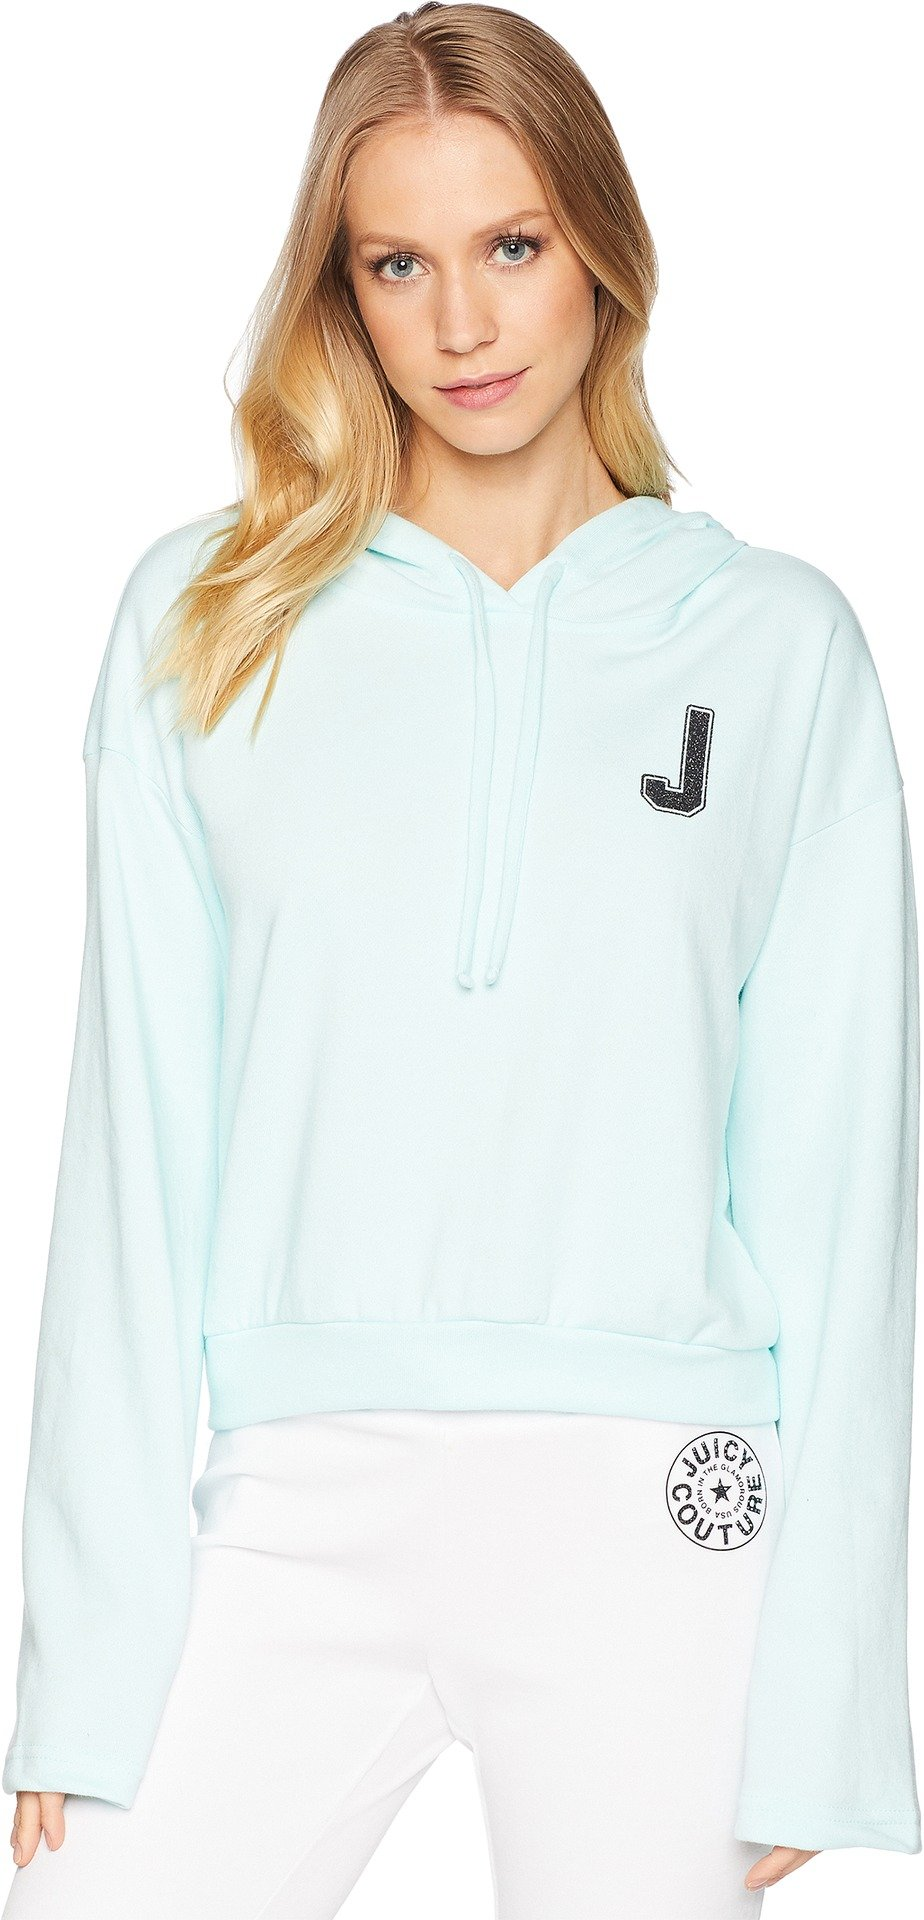 Juicy Couture Womens French Terry Logo Hoodie Blue XS